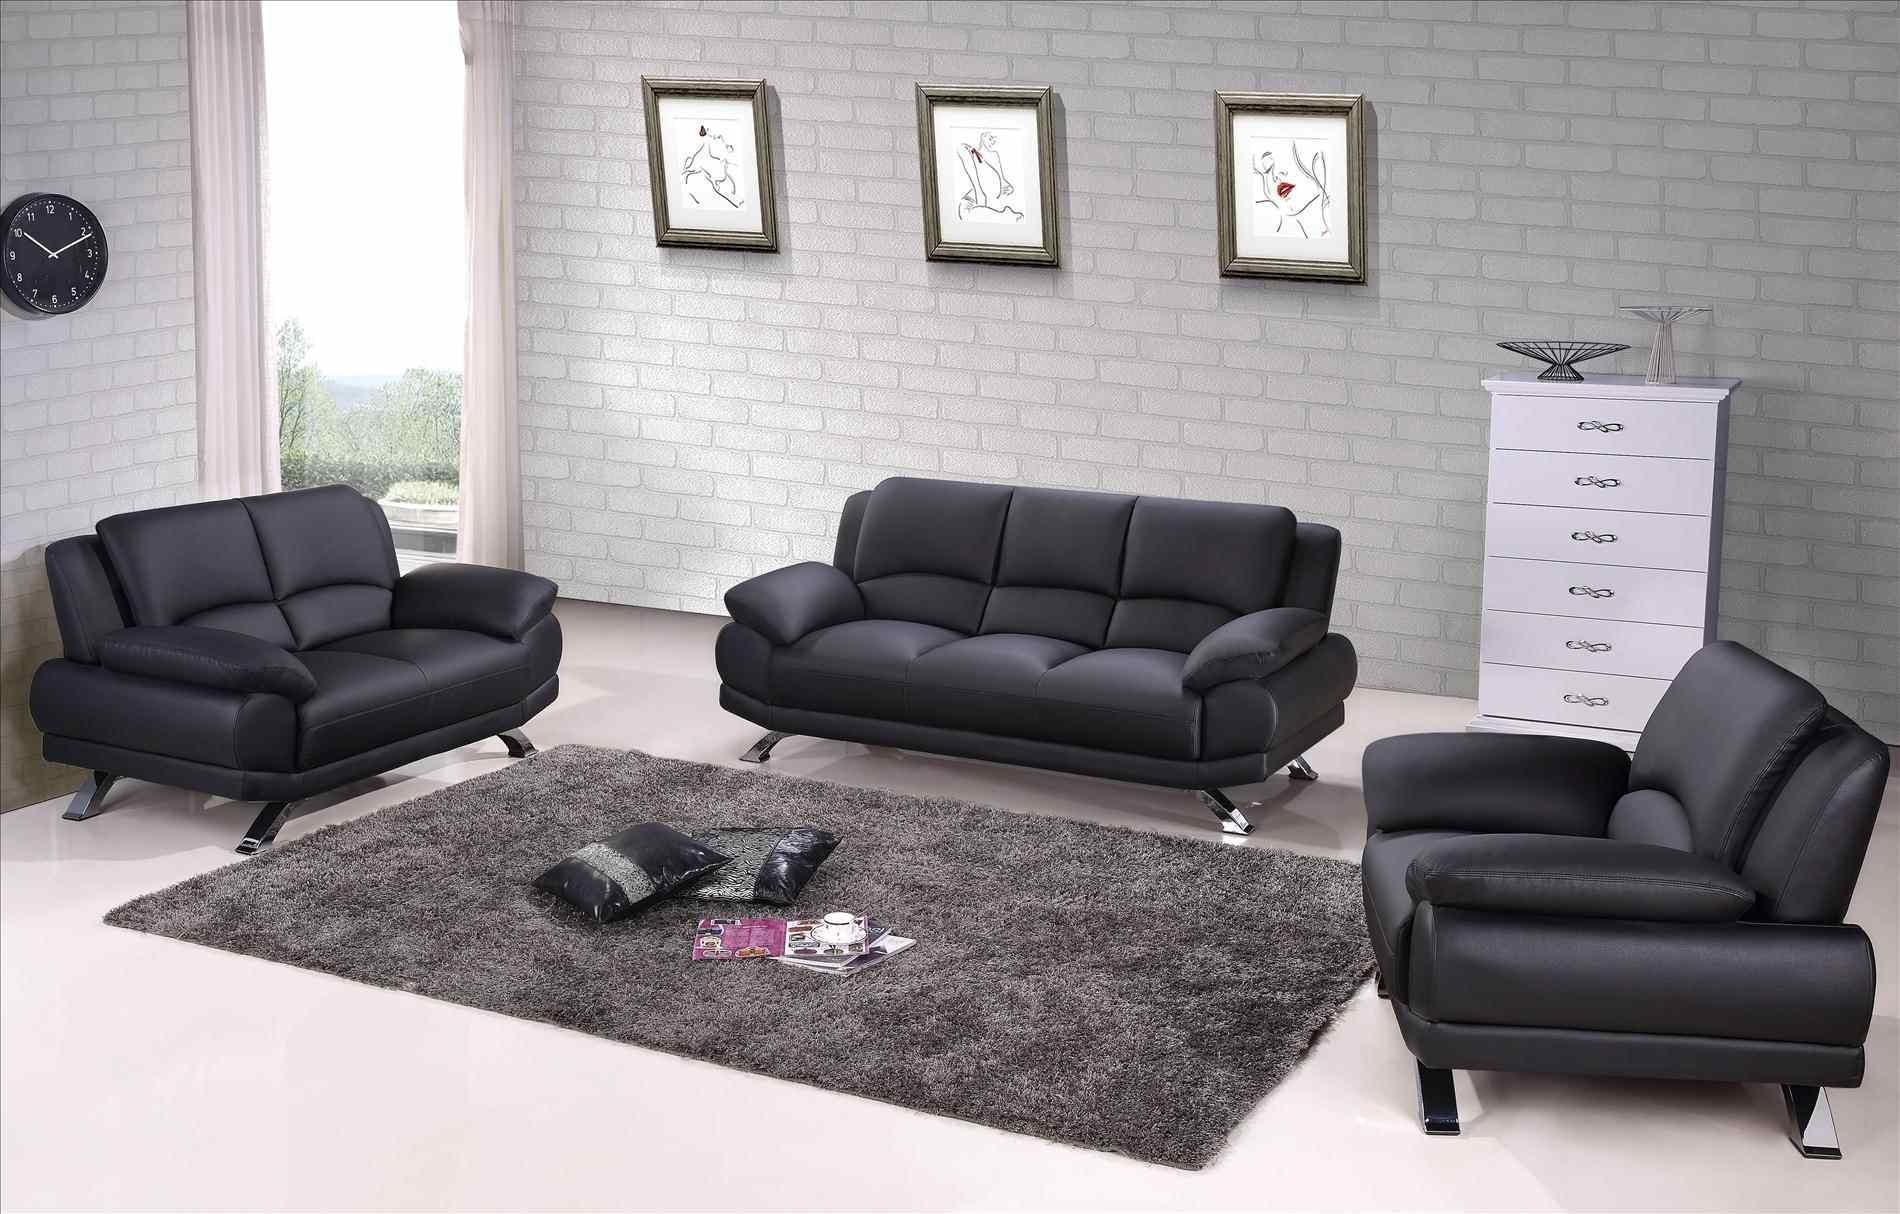 Couch : Genuine Leather Couches Kramfors Lshape Sectional Youtube In Nj Sectional Sofas (Image 2 of 10)